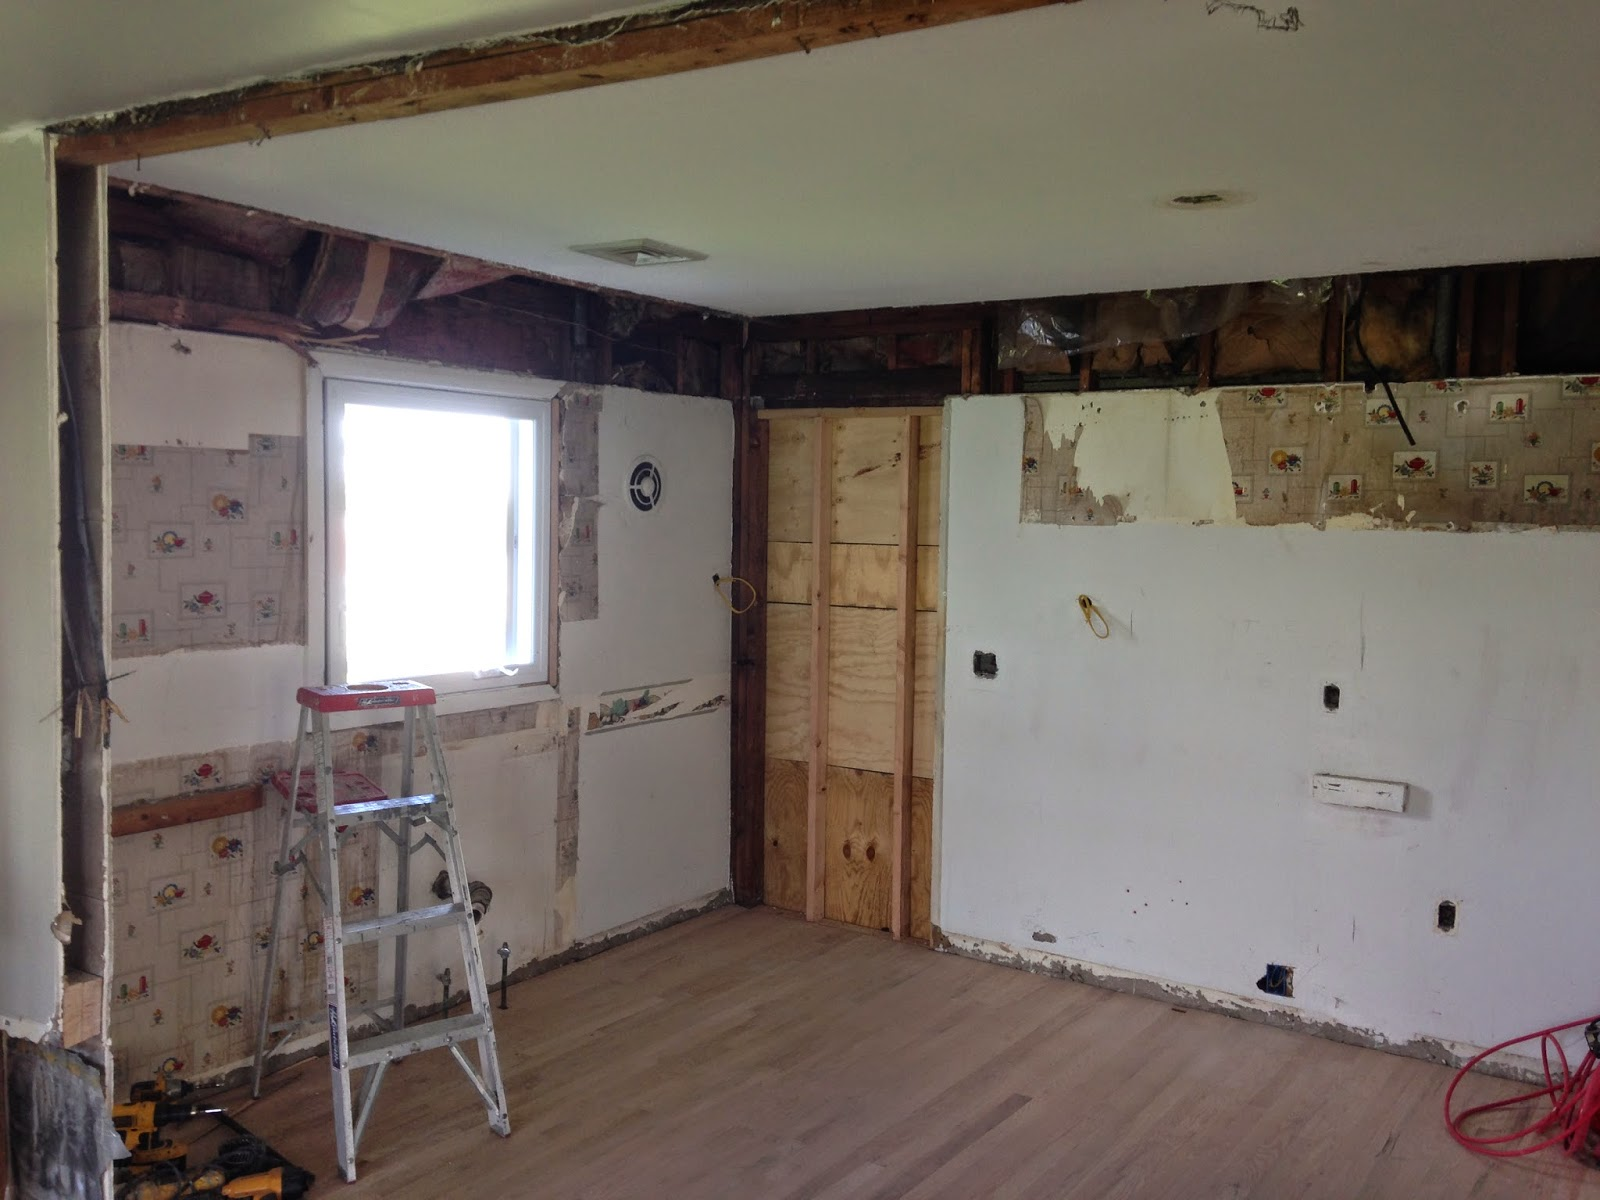 Kitchen cabinets belleville nj - After Removing The Exterior Door And Framing The Space Bobby Installed Decora Cabinets And An Island The Corner Cabinets Where A Door Once Existed House